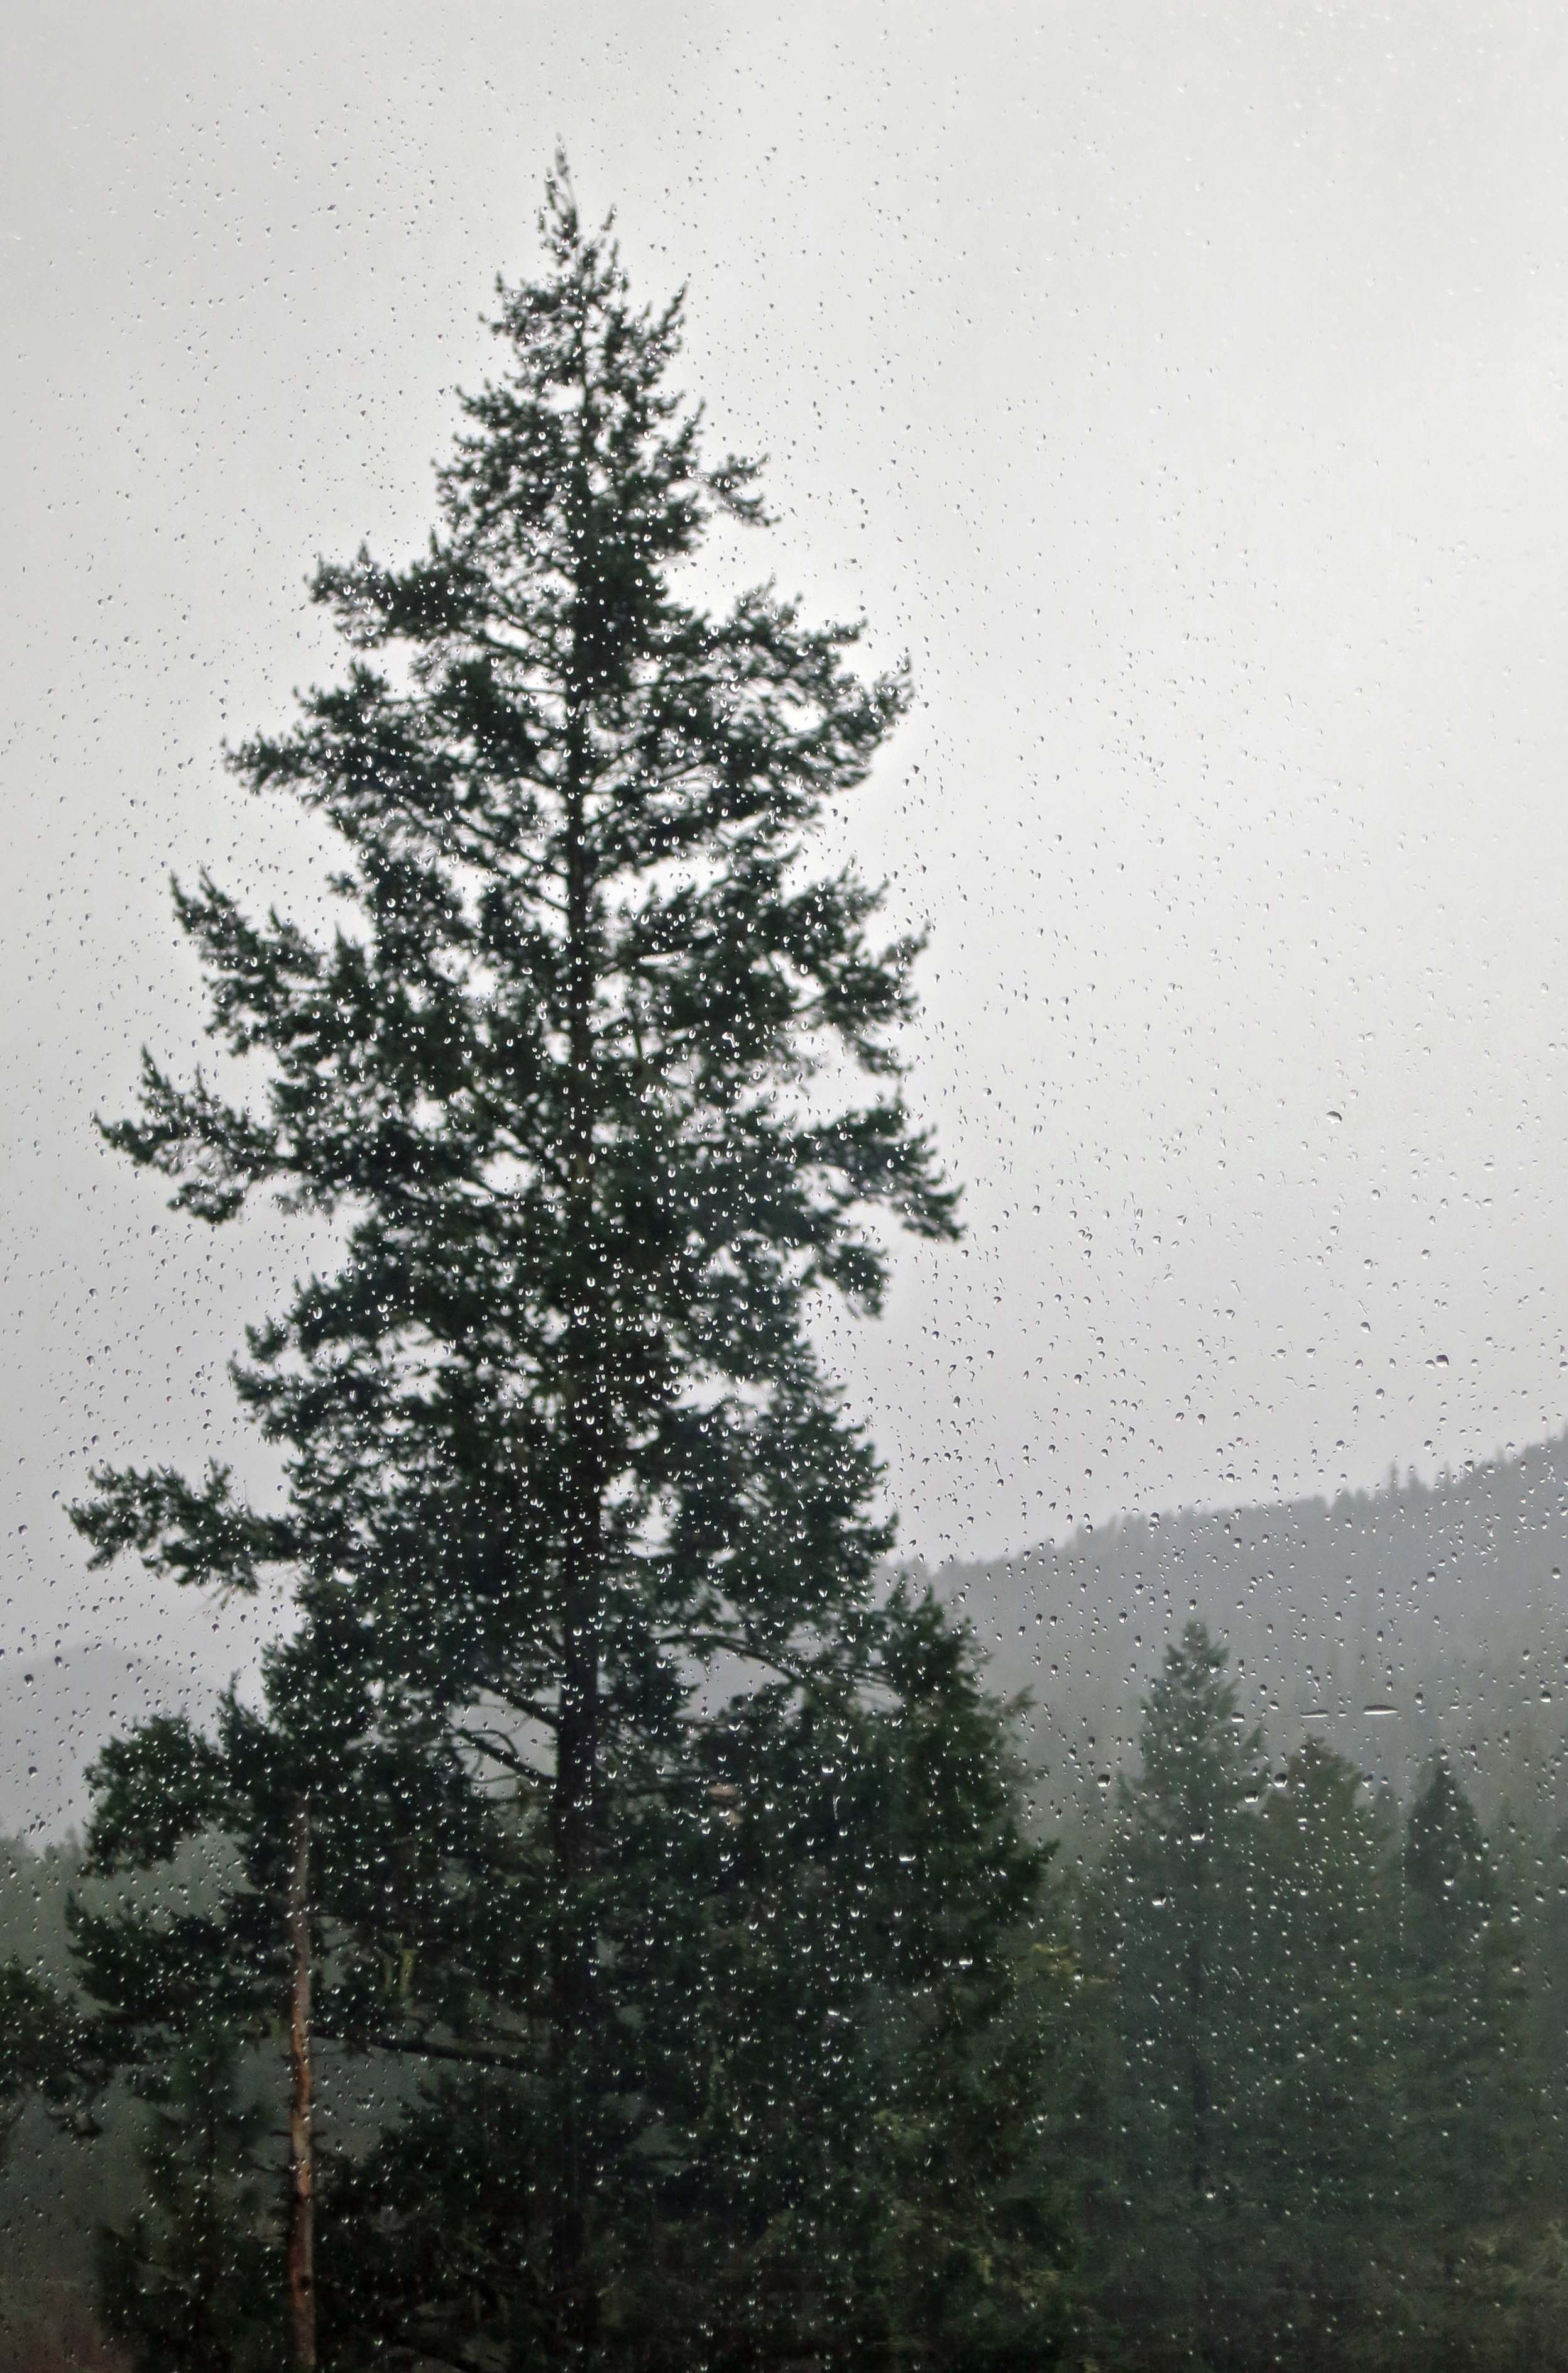 Rain splattered windows provided a view of our cedar tree out of the sunroom.